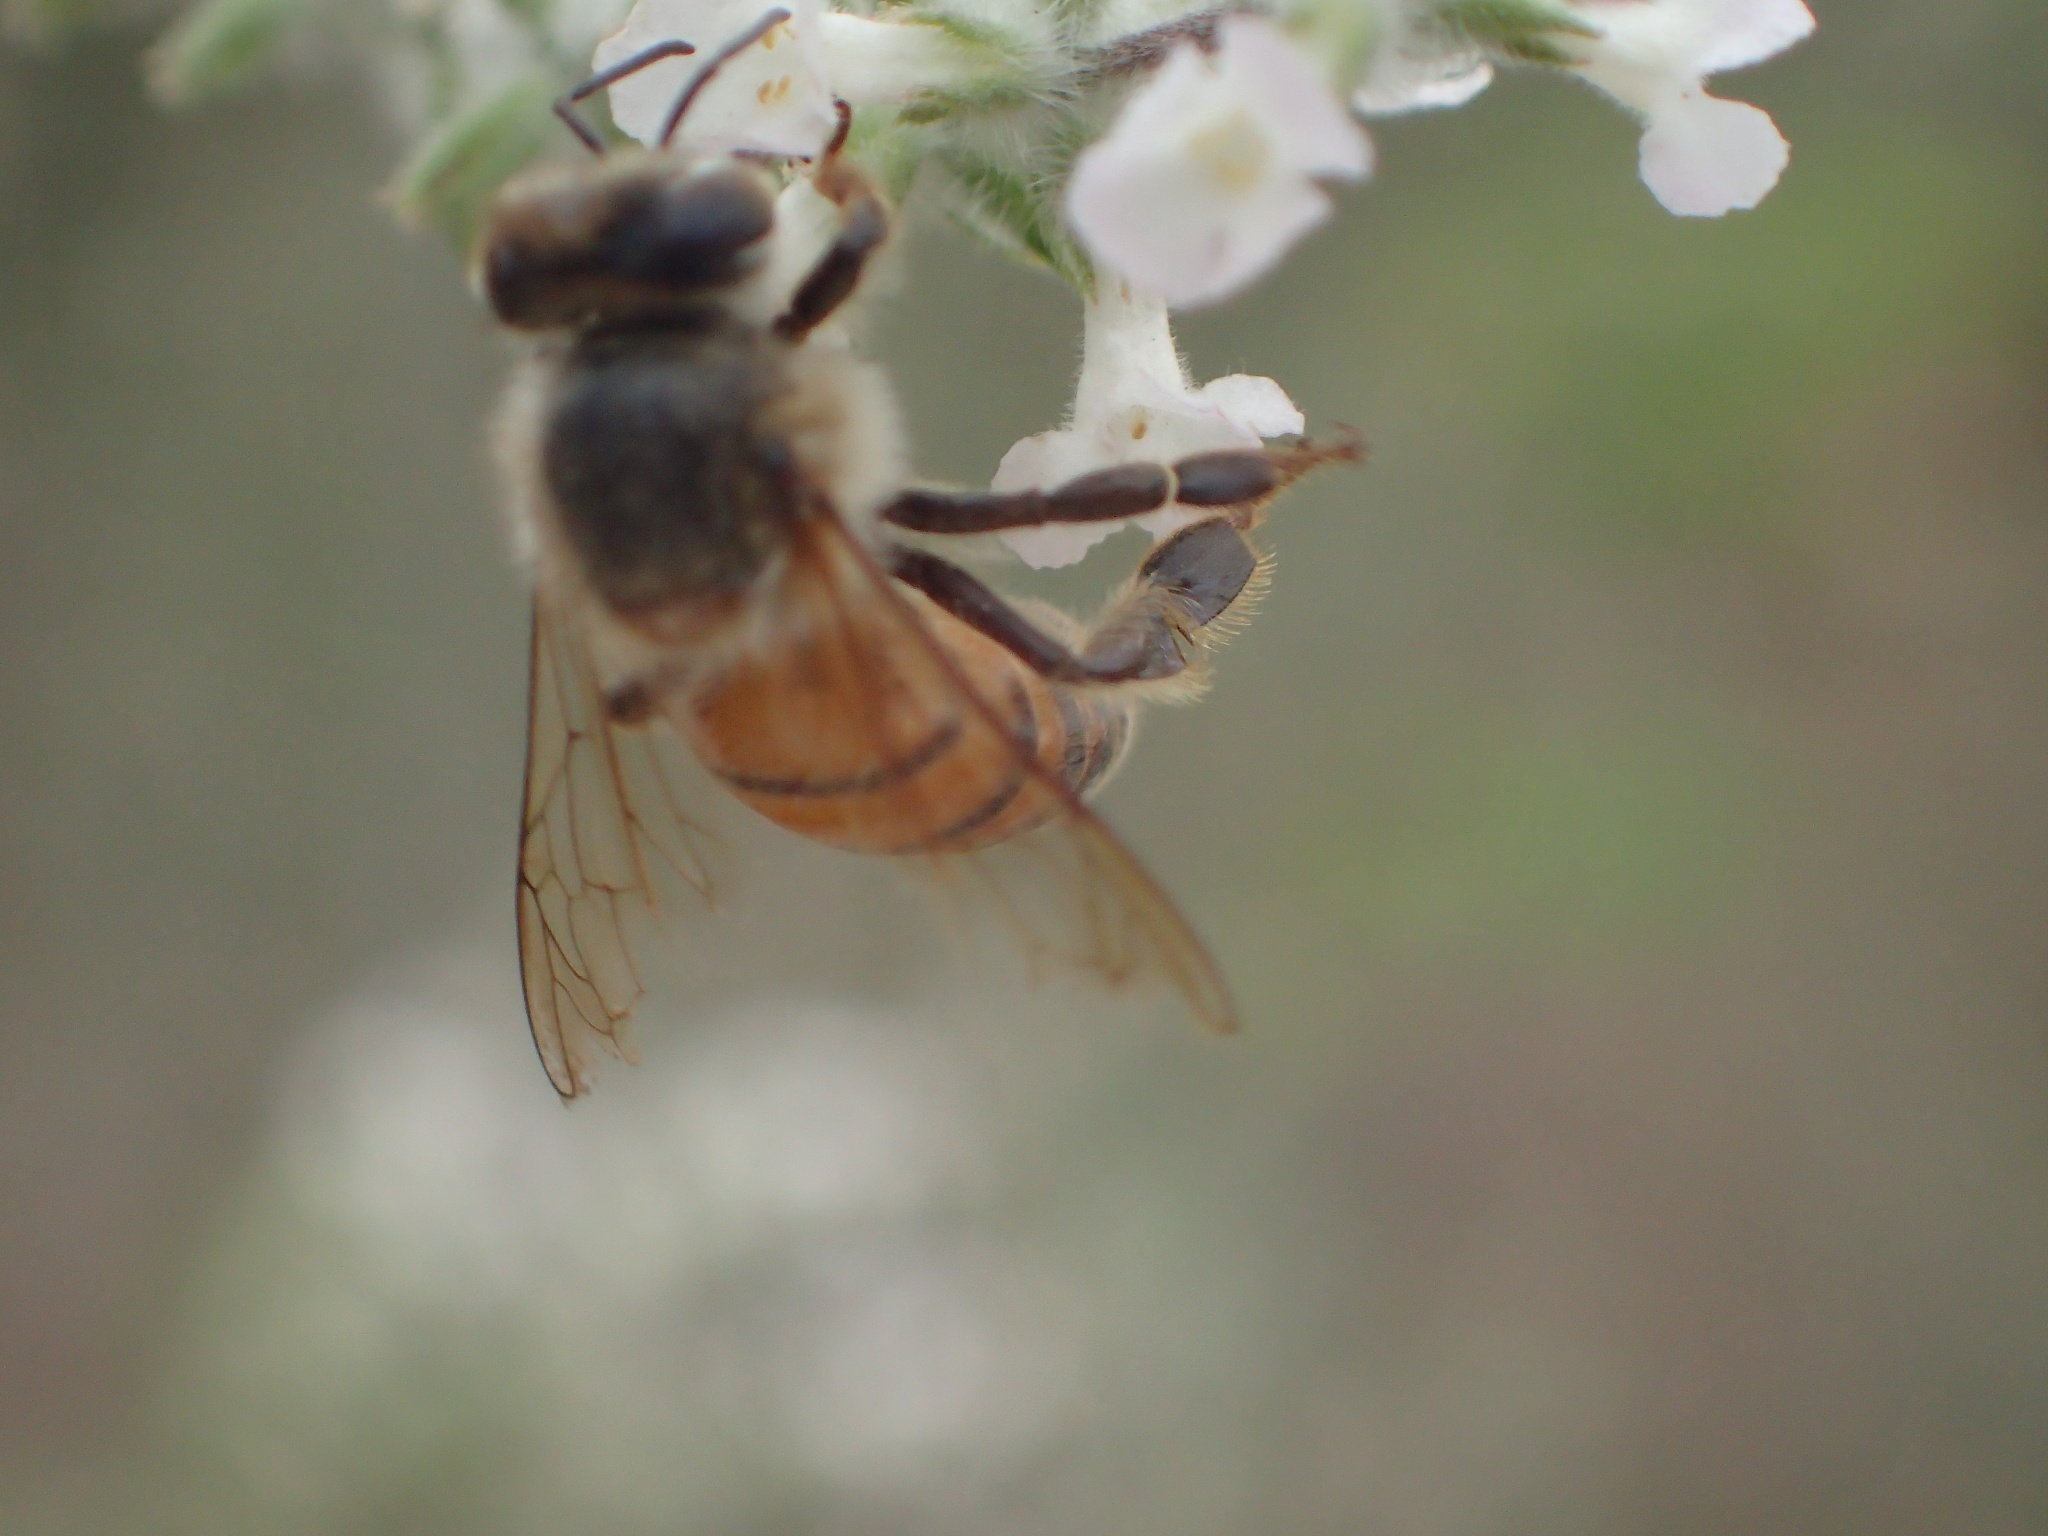 Busy Bee by sean.manion.9